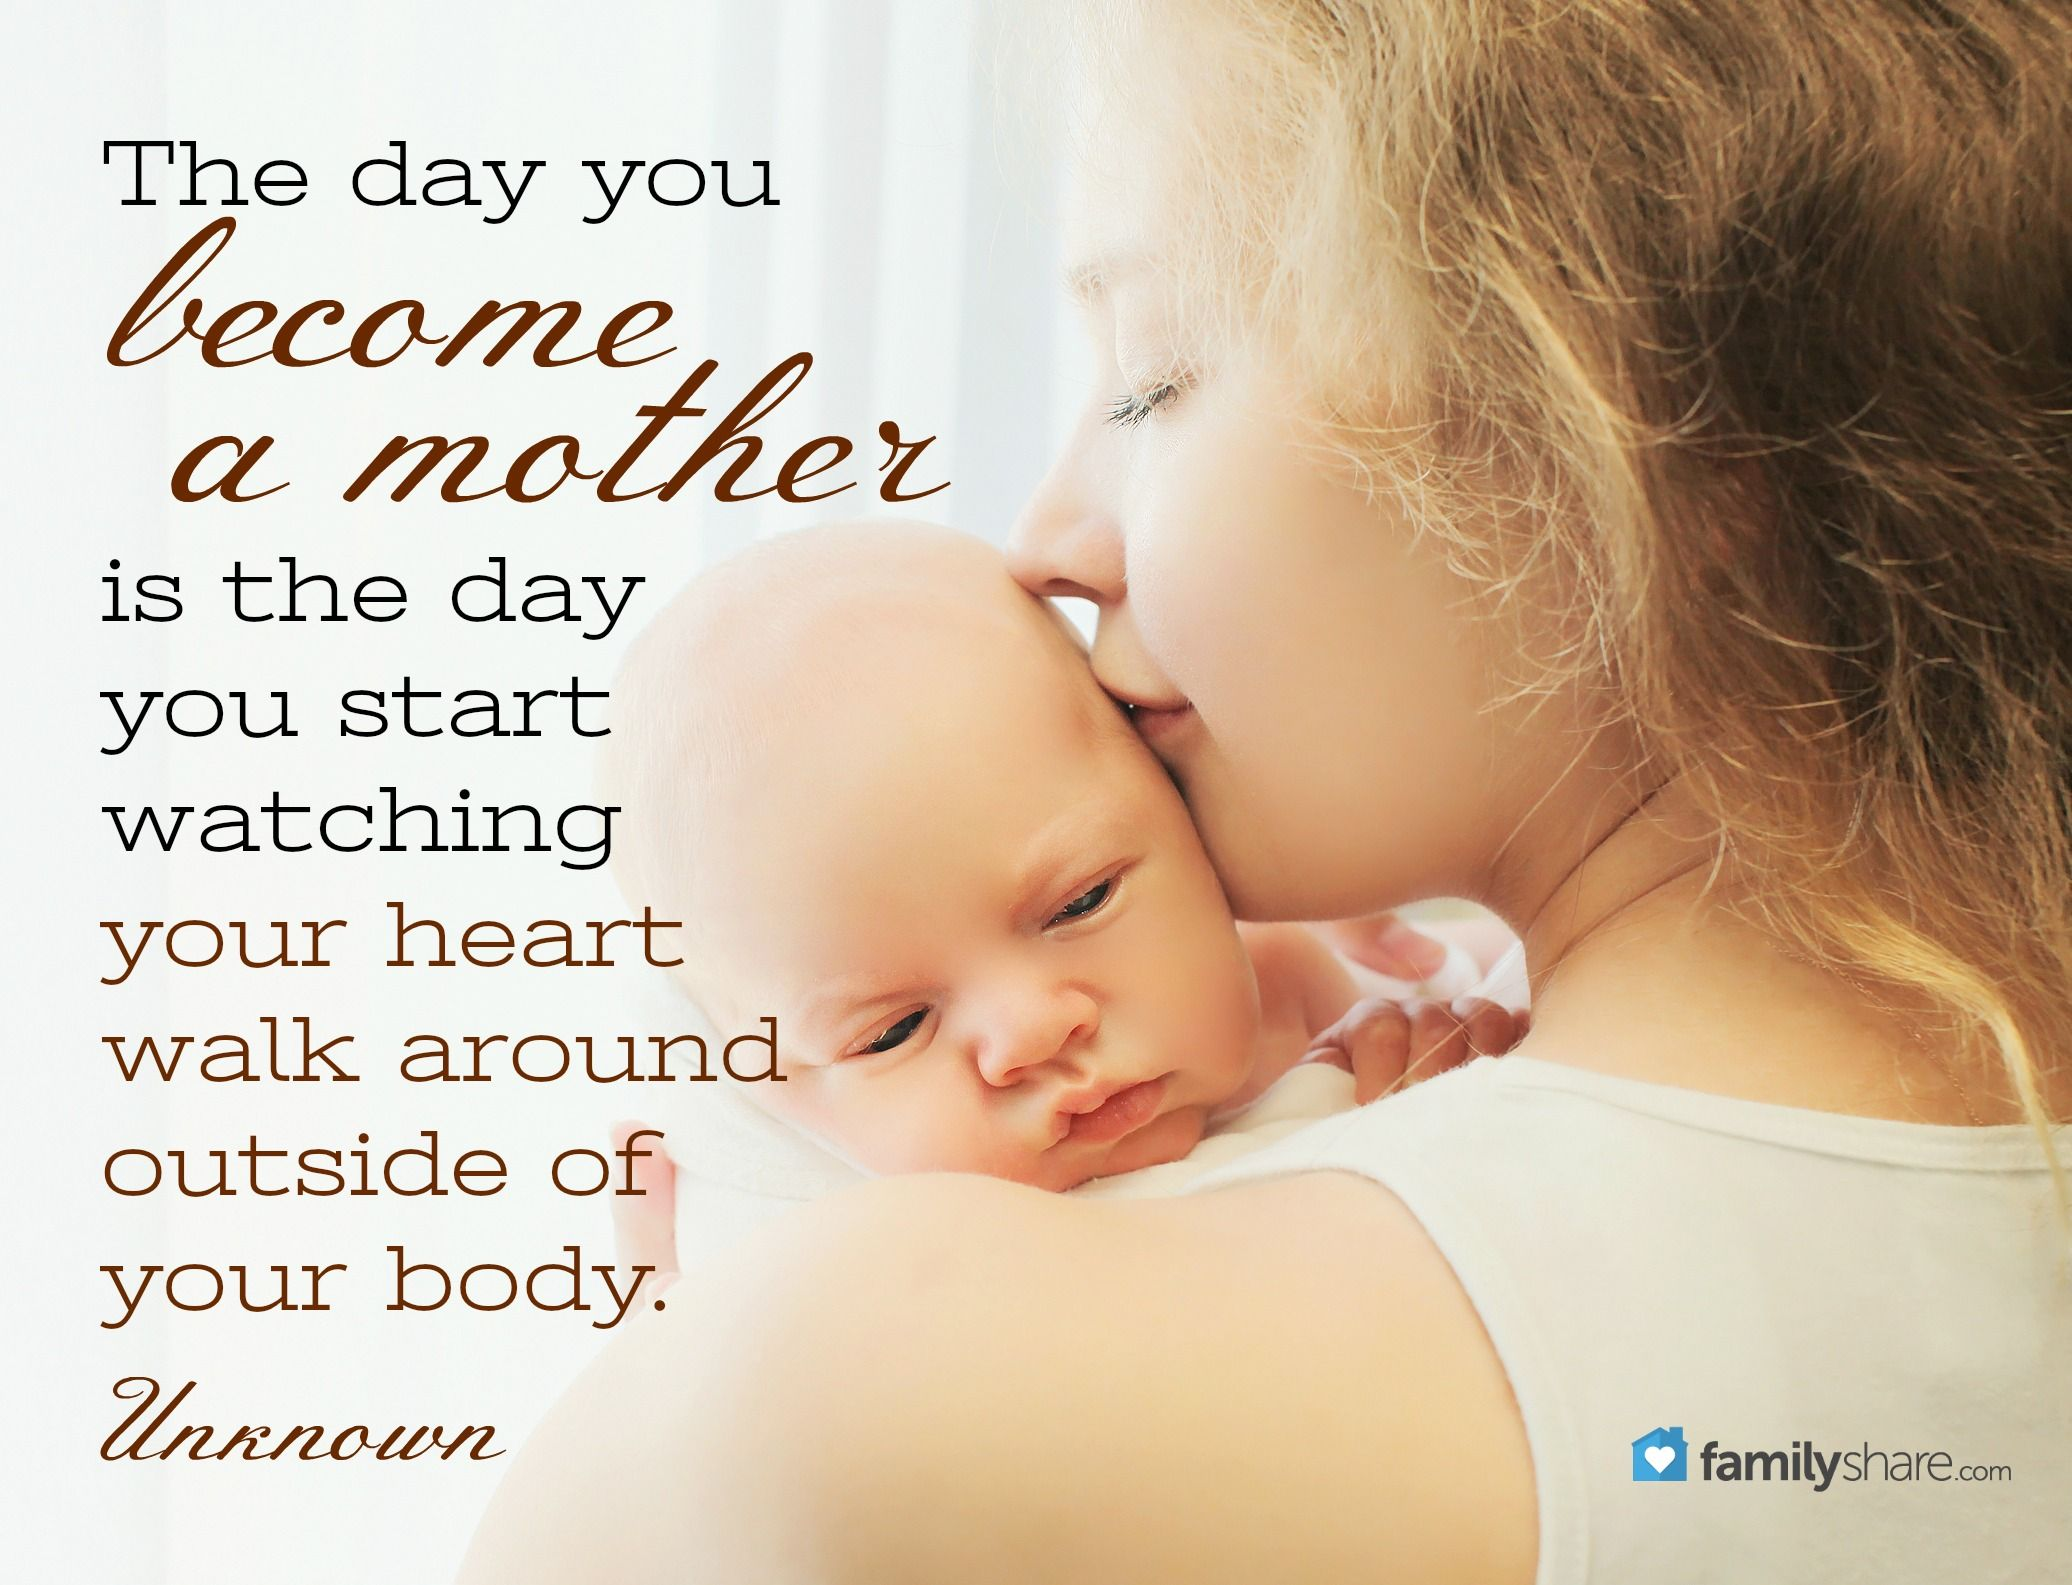 The Day You Become A Mother Is The Day You Start Watching Your Heart Walk Around Outside Of Your Body Unkno Becoming A Mother Quote Mother Quotes Body Quotes